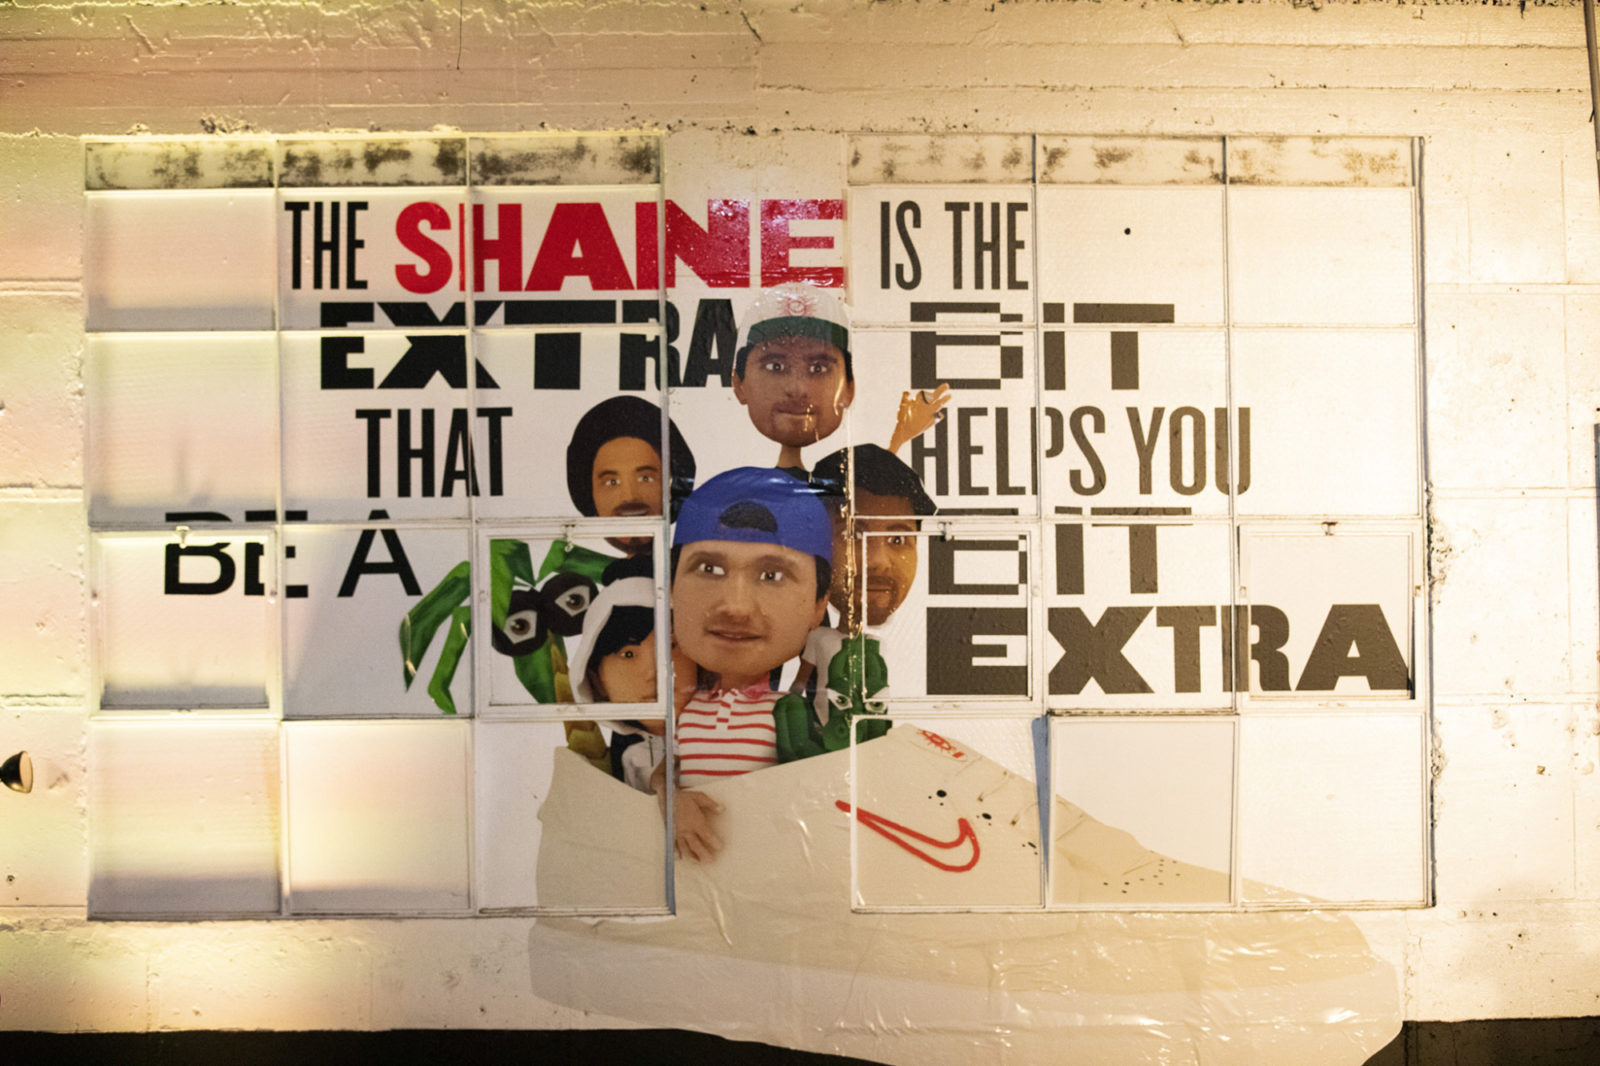 Space between nike the shane 14